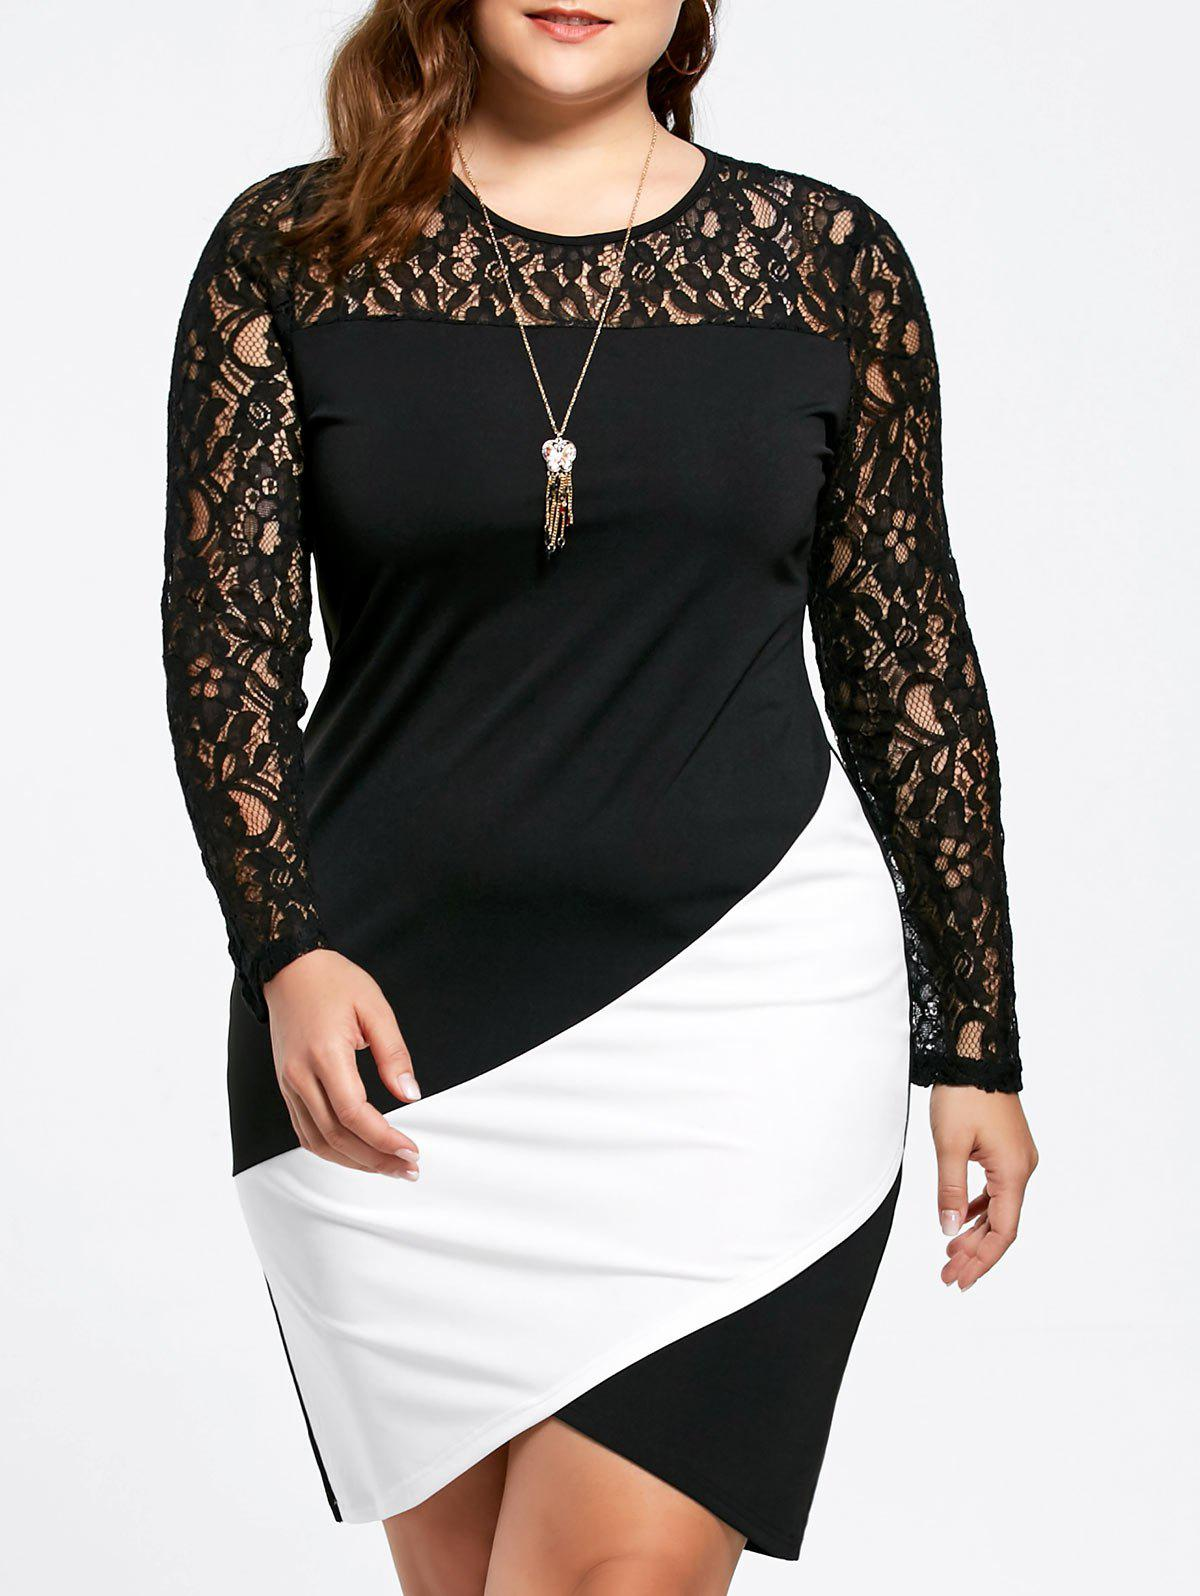 Asymmetric Plus Size Lace Sleeve DressWOMEN<br><br>Size: XL; Color: WHITE AND BLACK; Style: Brief; Material: Lace,Polyester; Silhouette: Bodycon; Dresses Length: Knee-Length; Neckline: Round Collar; Sleeve Length: Long Sleeves; Embellishment: Lace,Panel; Pattern Type: Others; With Belt: No; Season: Fall,Spring; Weight: 0.3200kg; Package Contents: 1 x Dress;